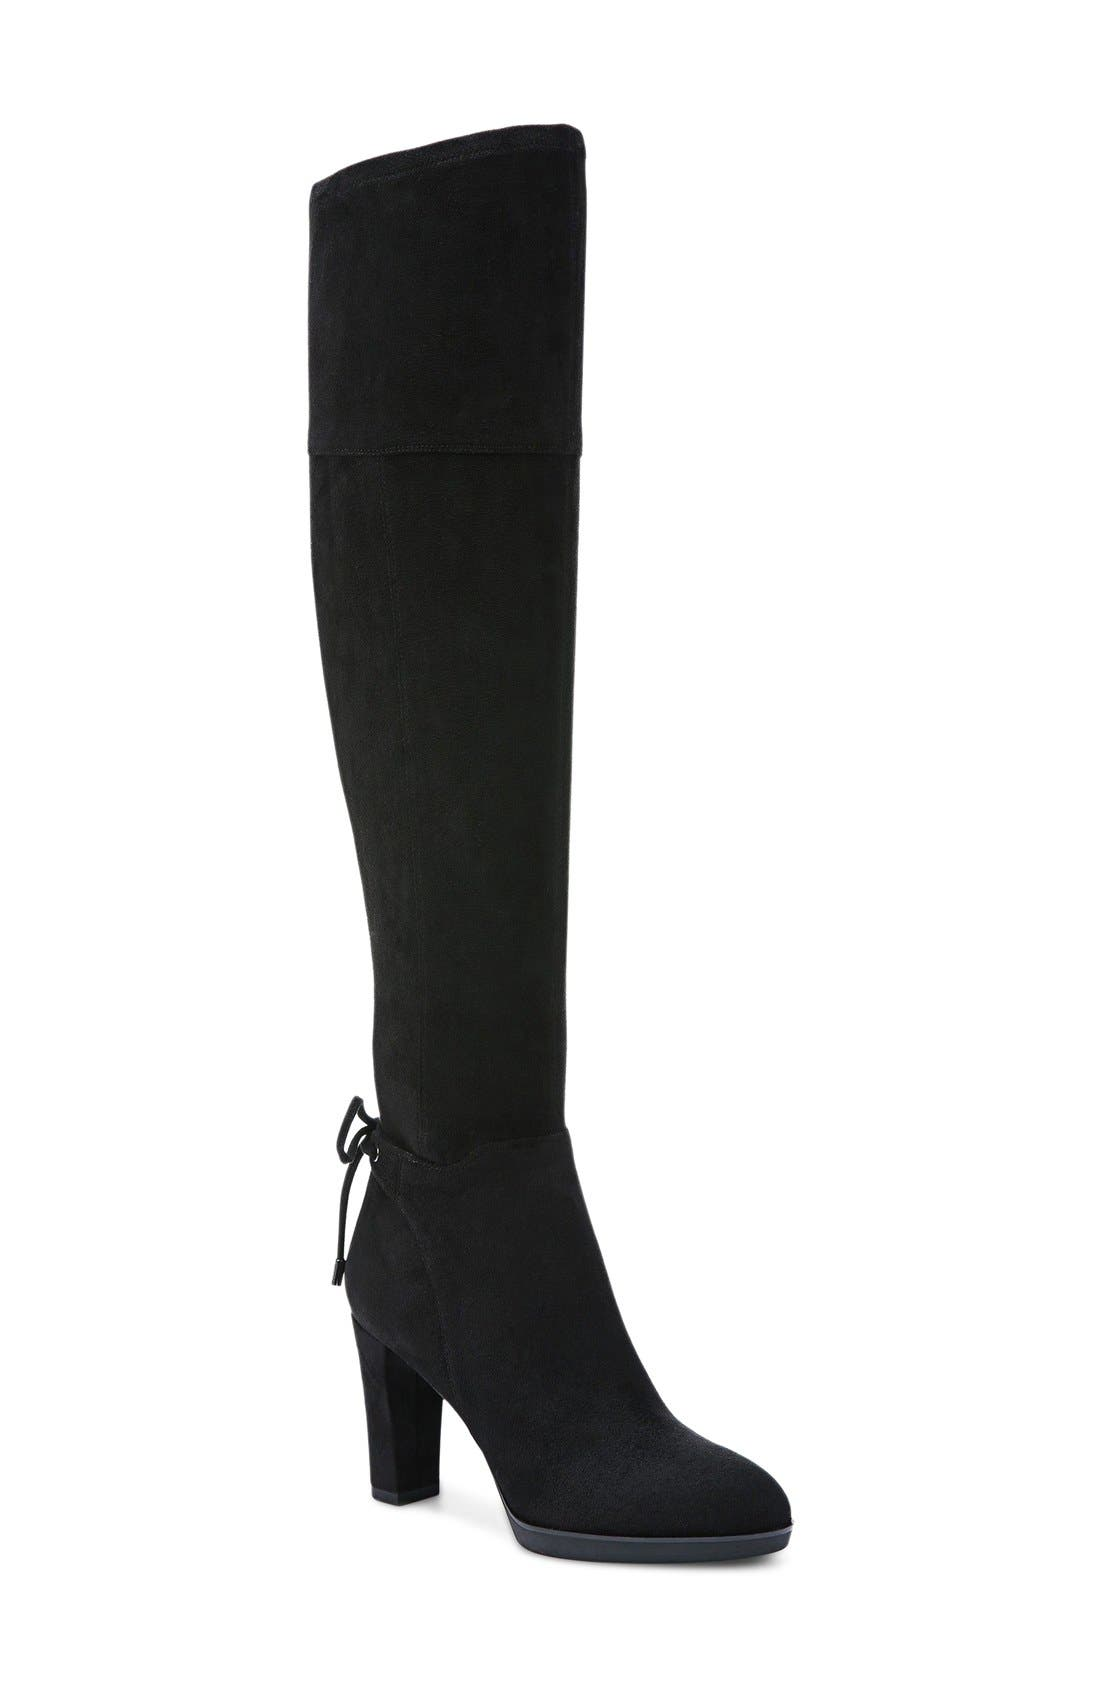 Ivanea Over the Knee Boot,                         Main,                         color, 001